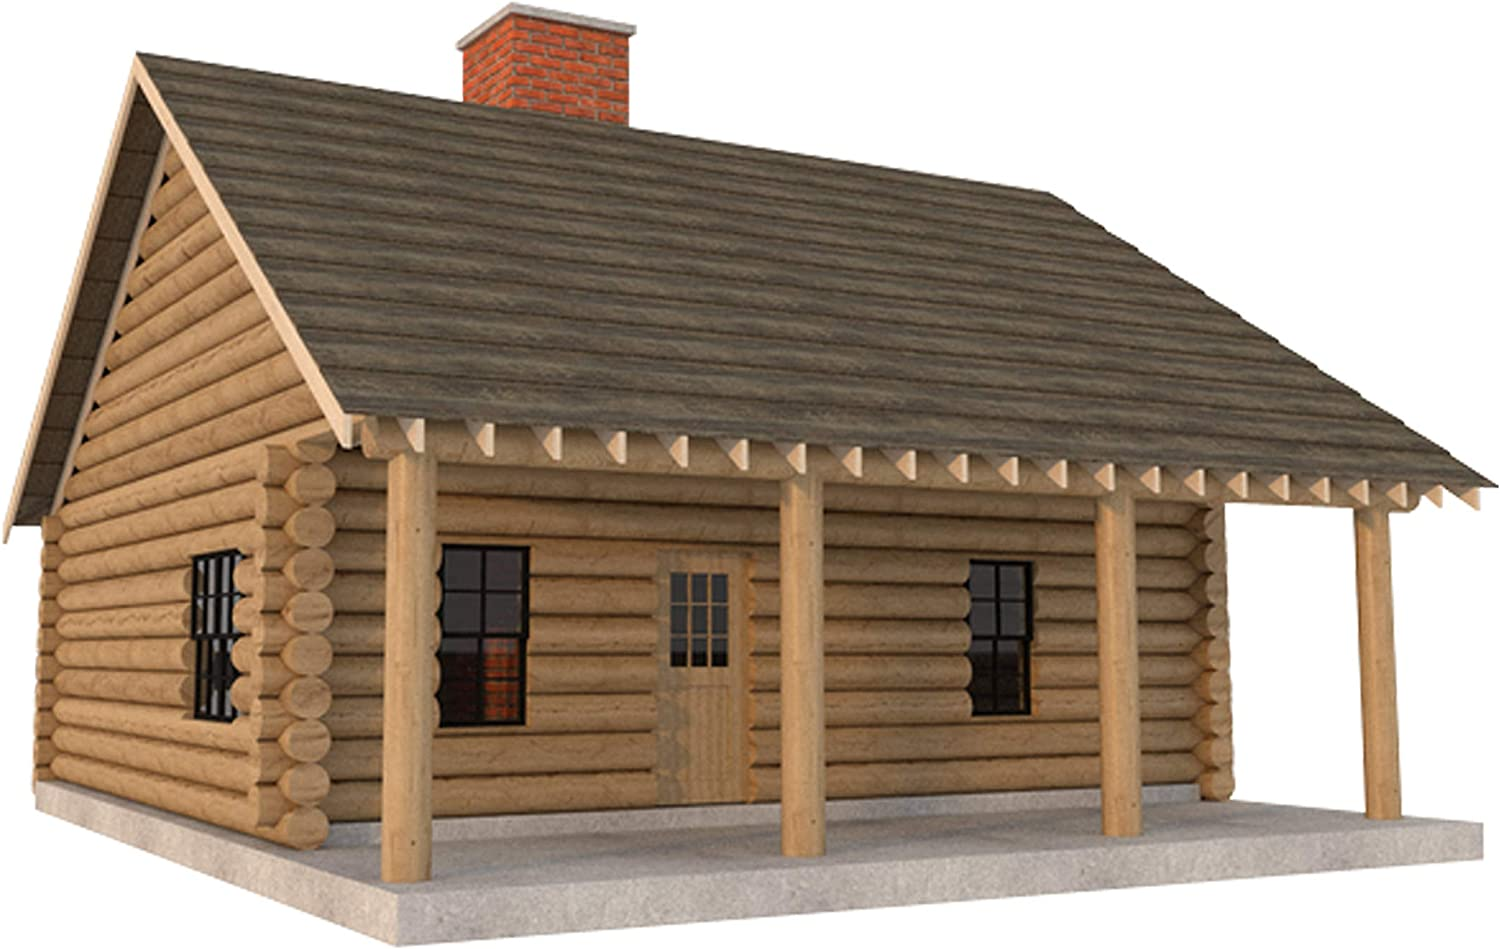 IE Luxury Log Cabin Cheap super special price House Plans DIY 2 Bu Home sqft Vacation 840 Bedroom